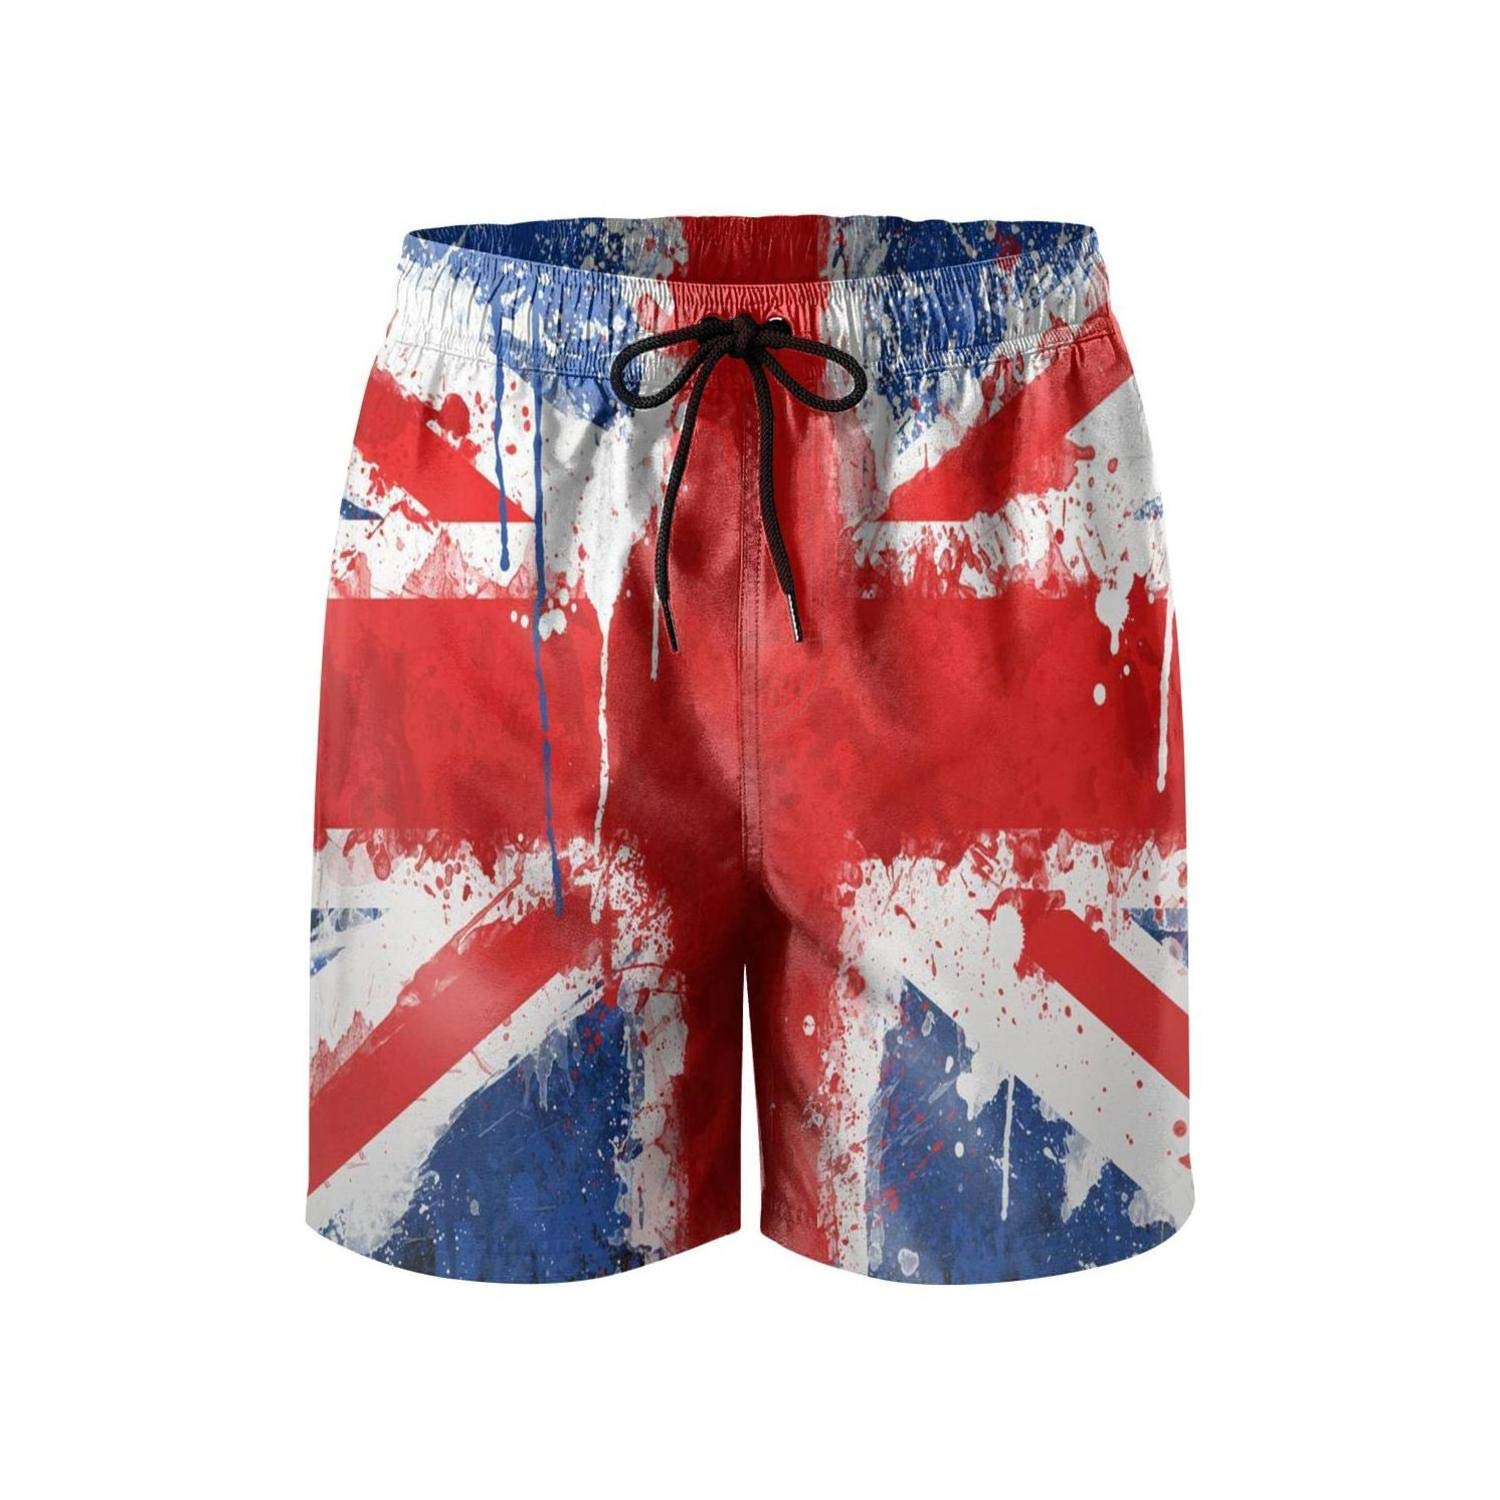 Bademode Union Jack Swimming Trunks Kleidung & Accessoires